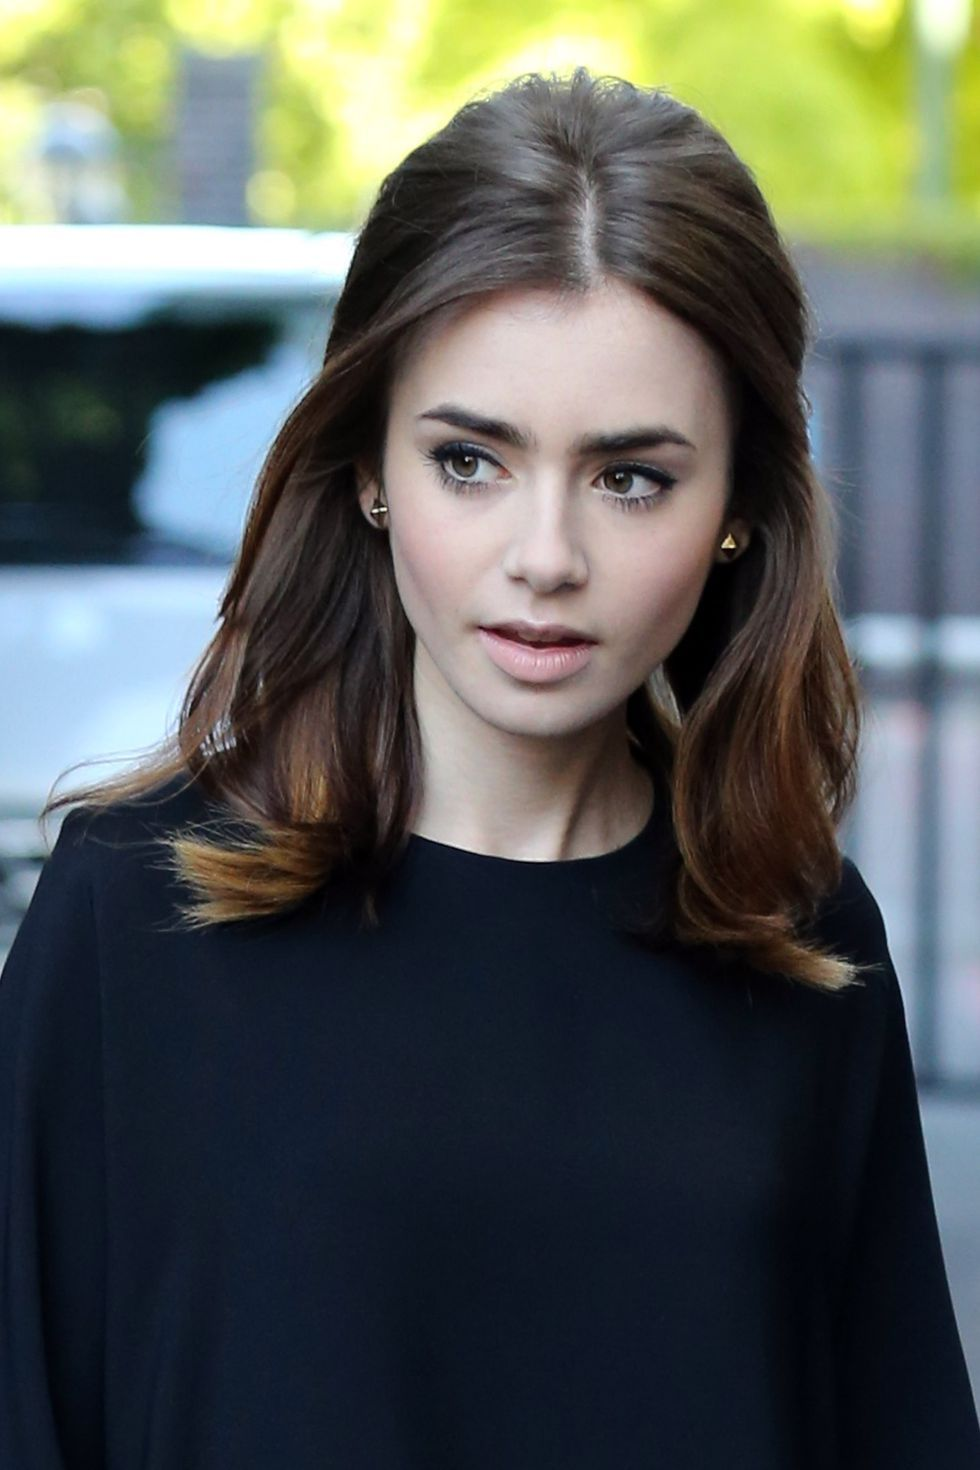 Photo of The Coolest Medium-Length Hairstyles to Steal From Celebs and Do Yourself